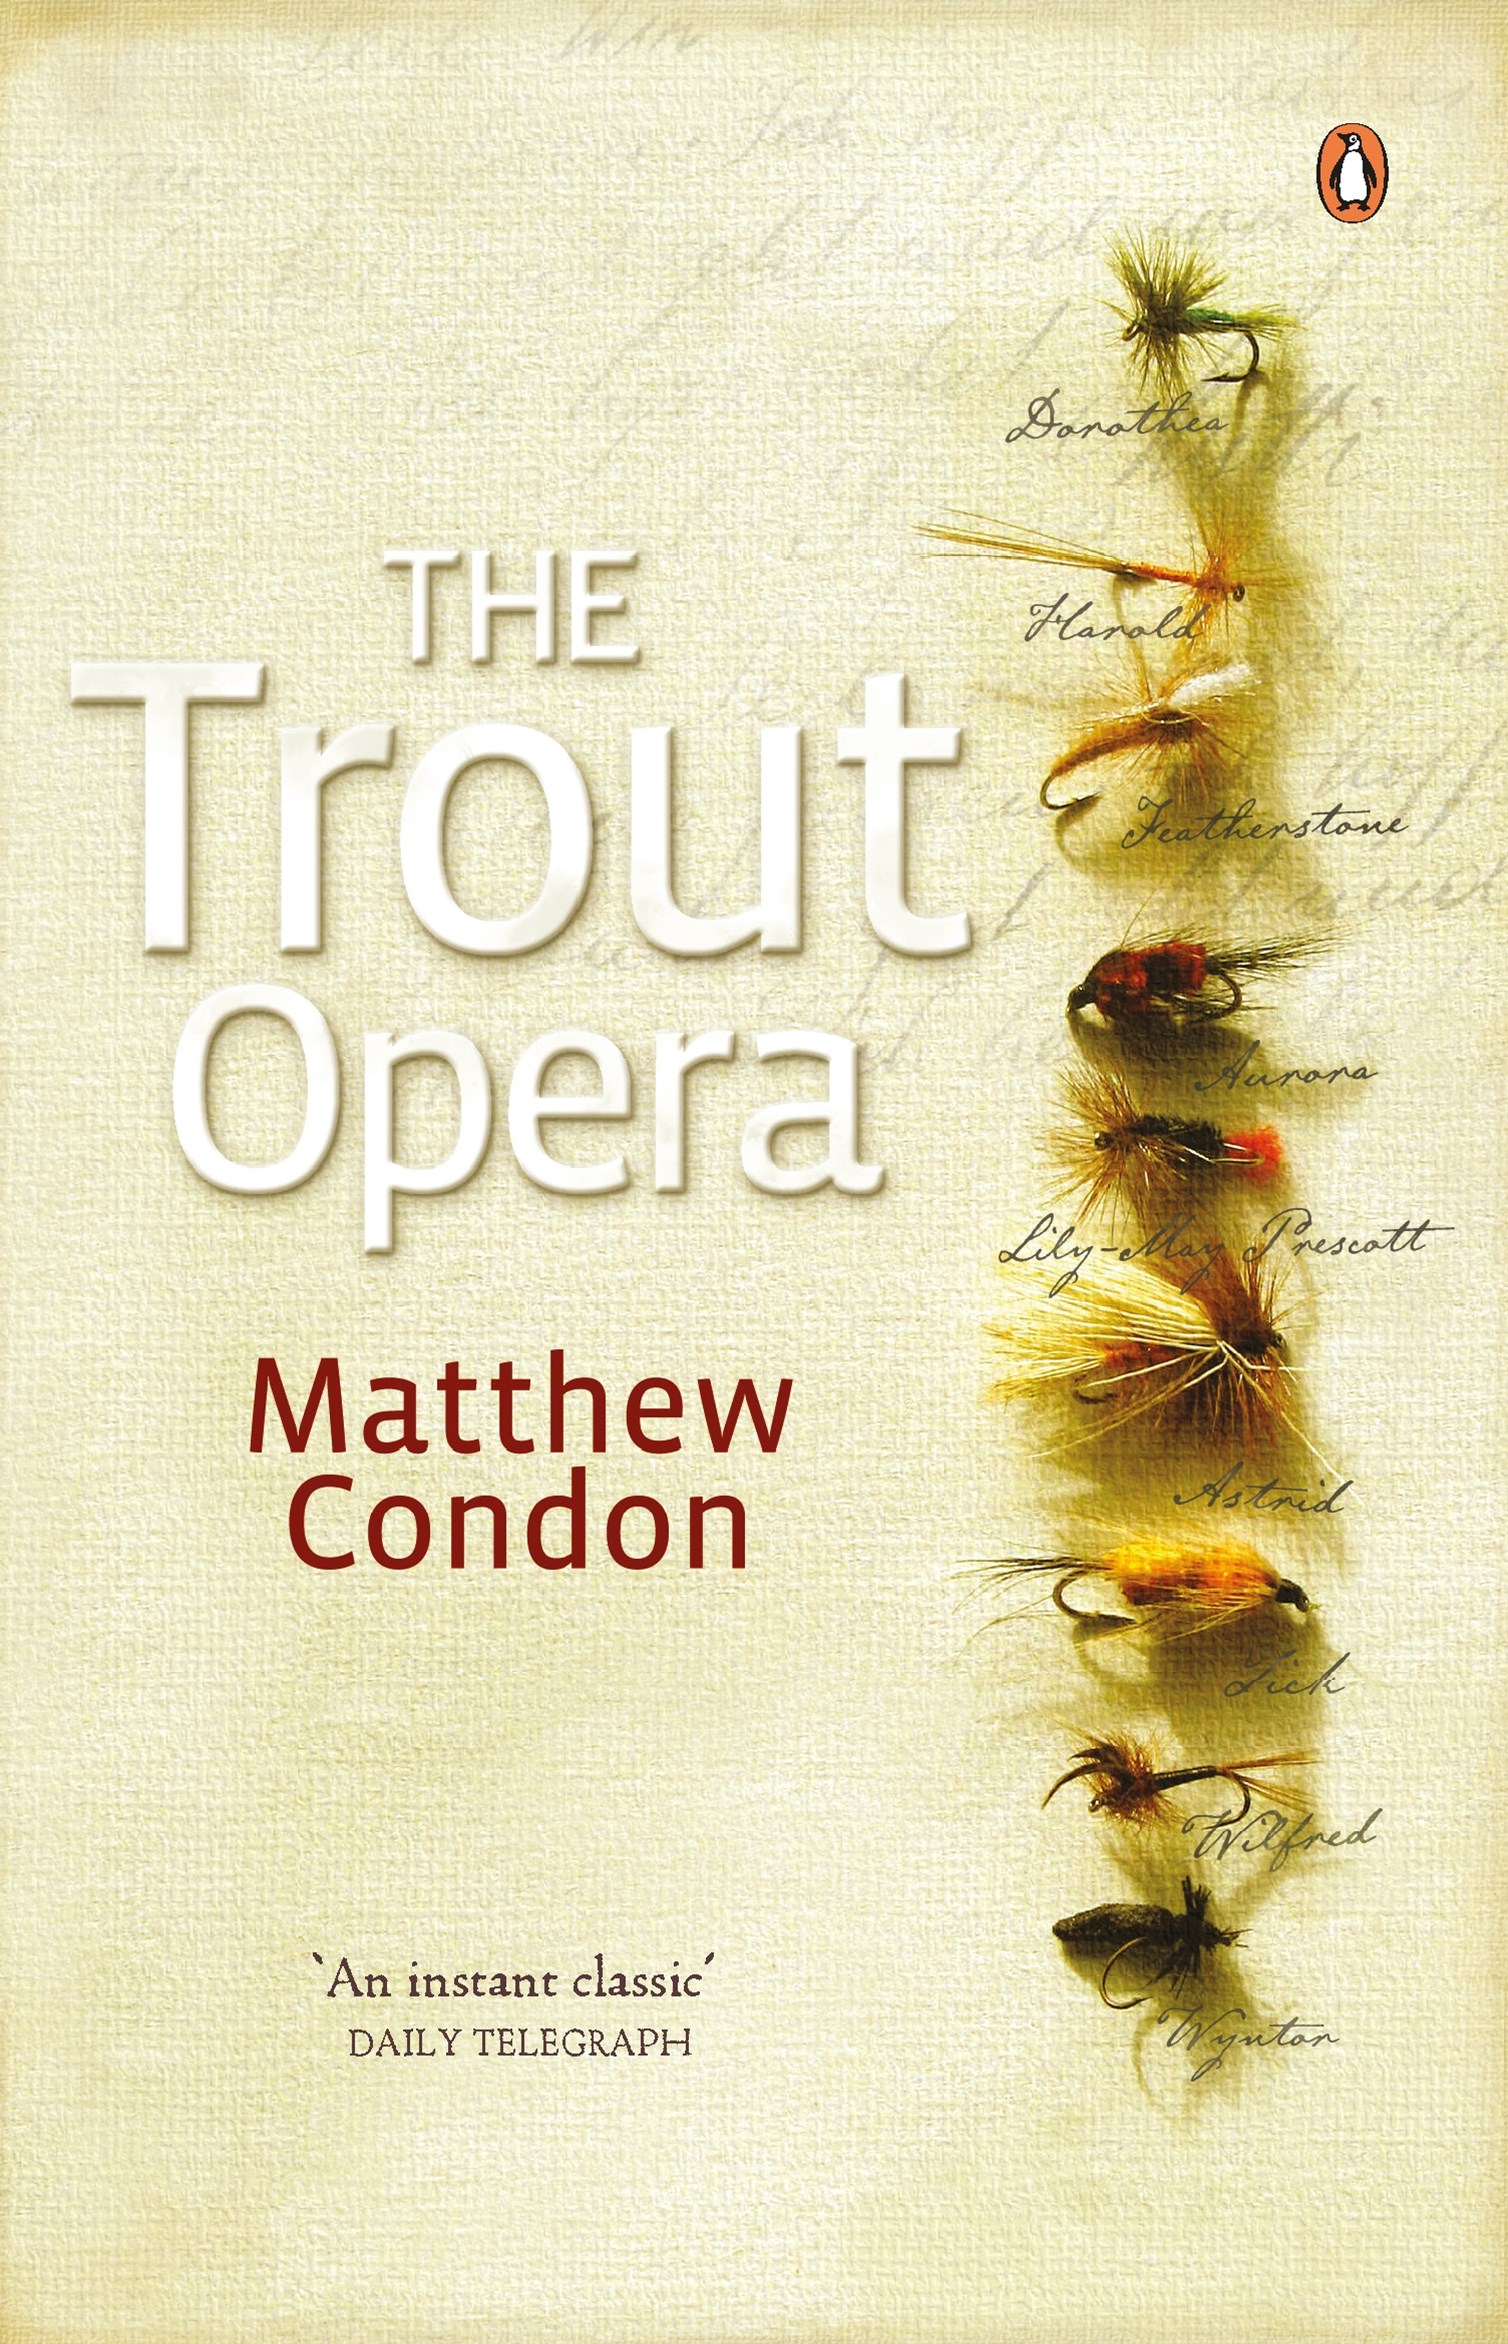 The Trout Opera